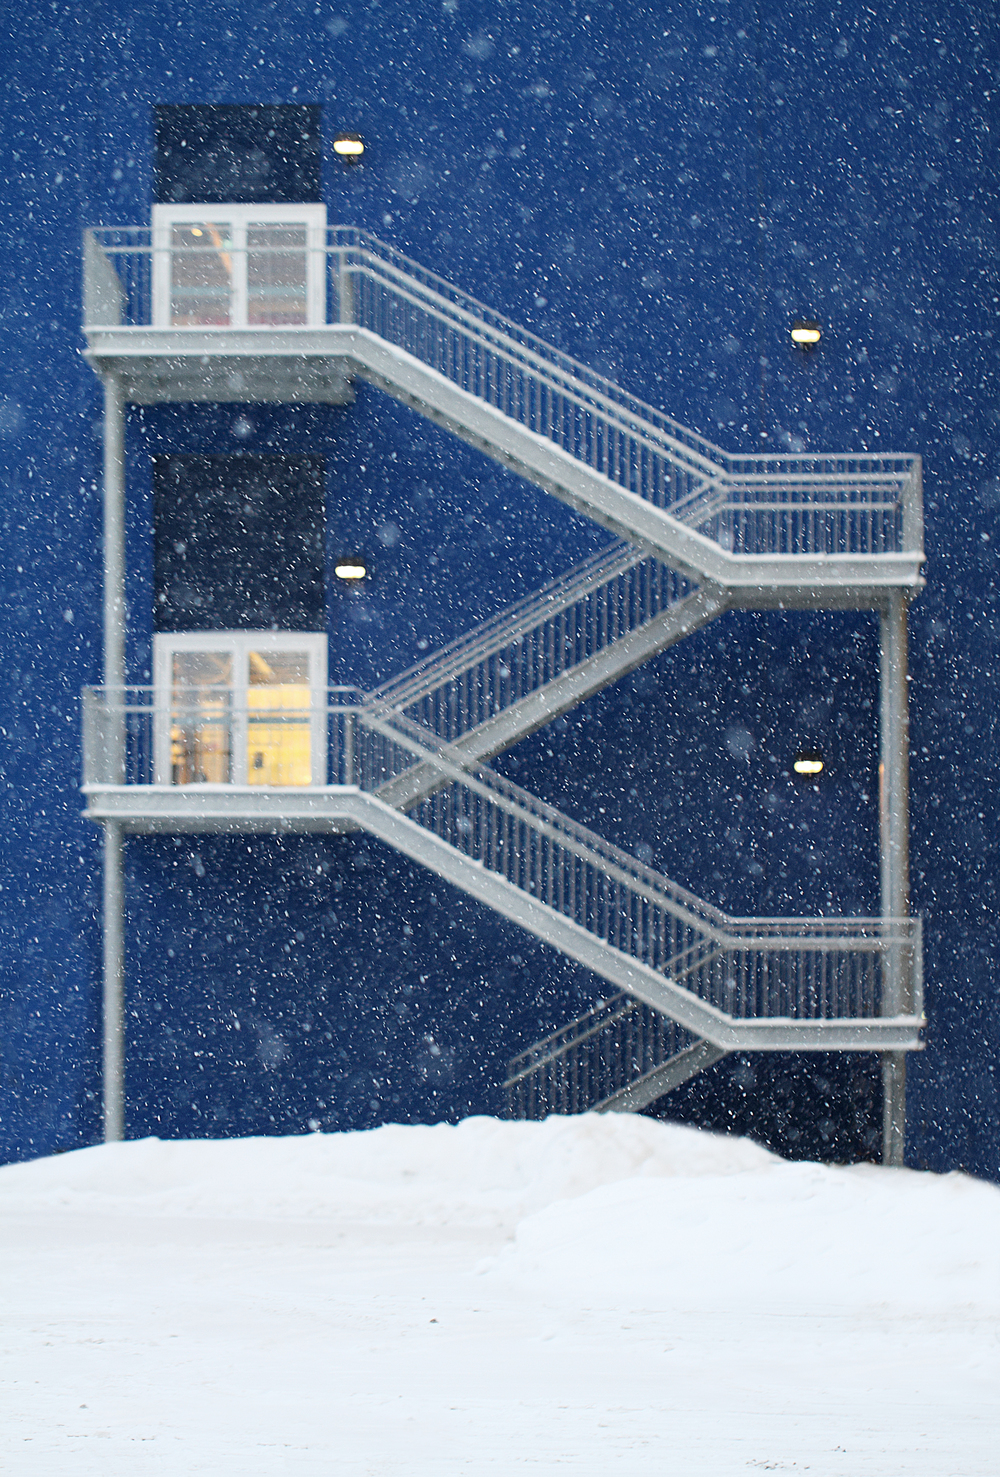 Stairs through the snow Comments